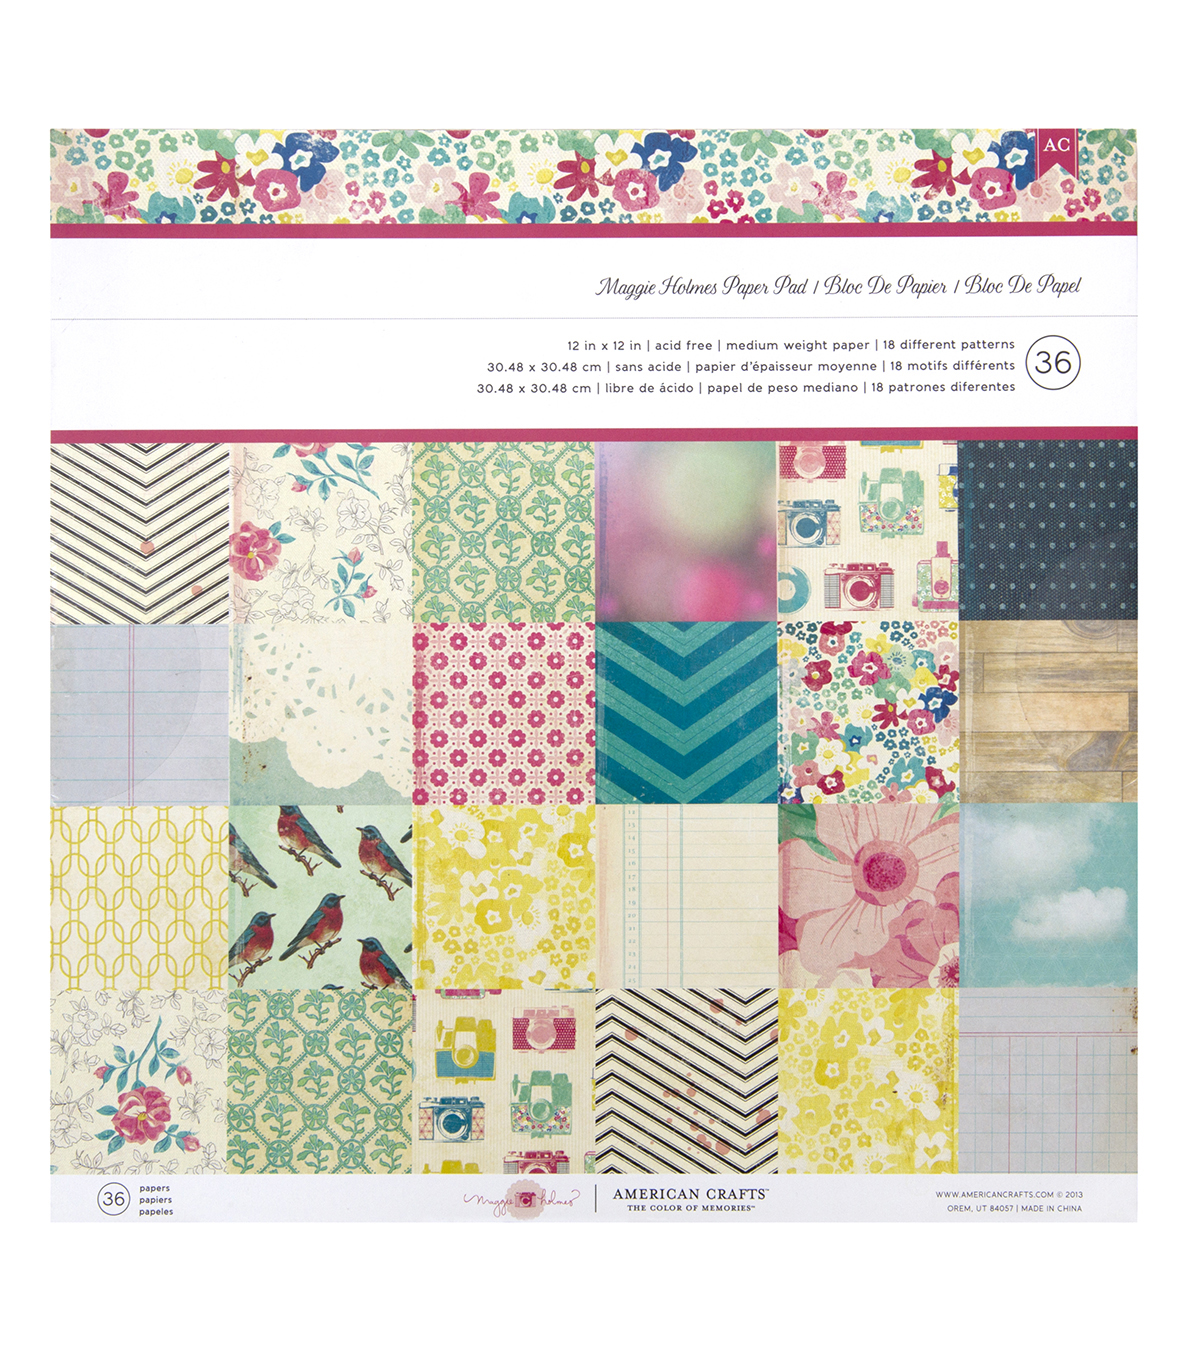 American Crafts™ Maggie Holmes Pack of 36 12''x12'' Paper Pad